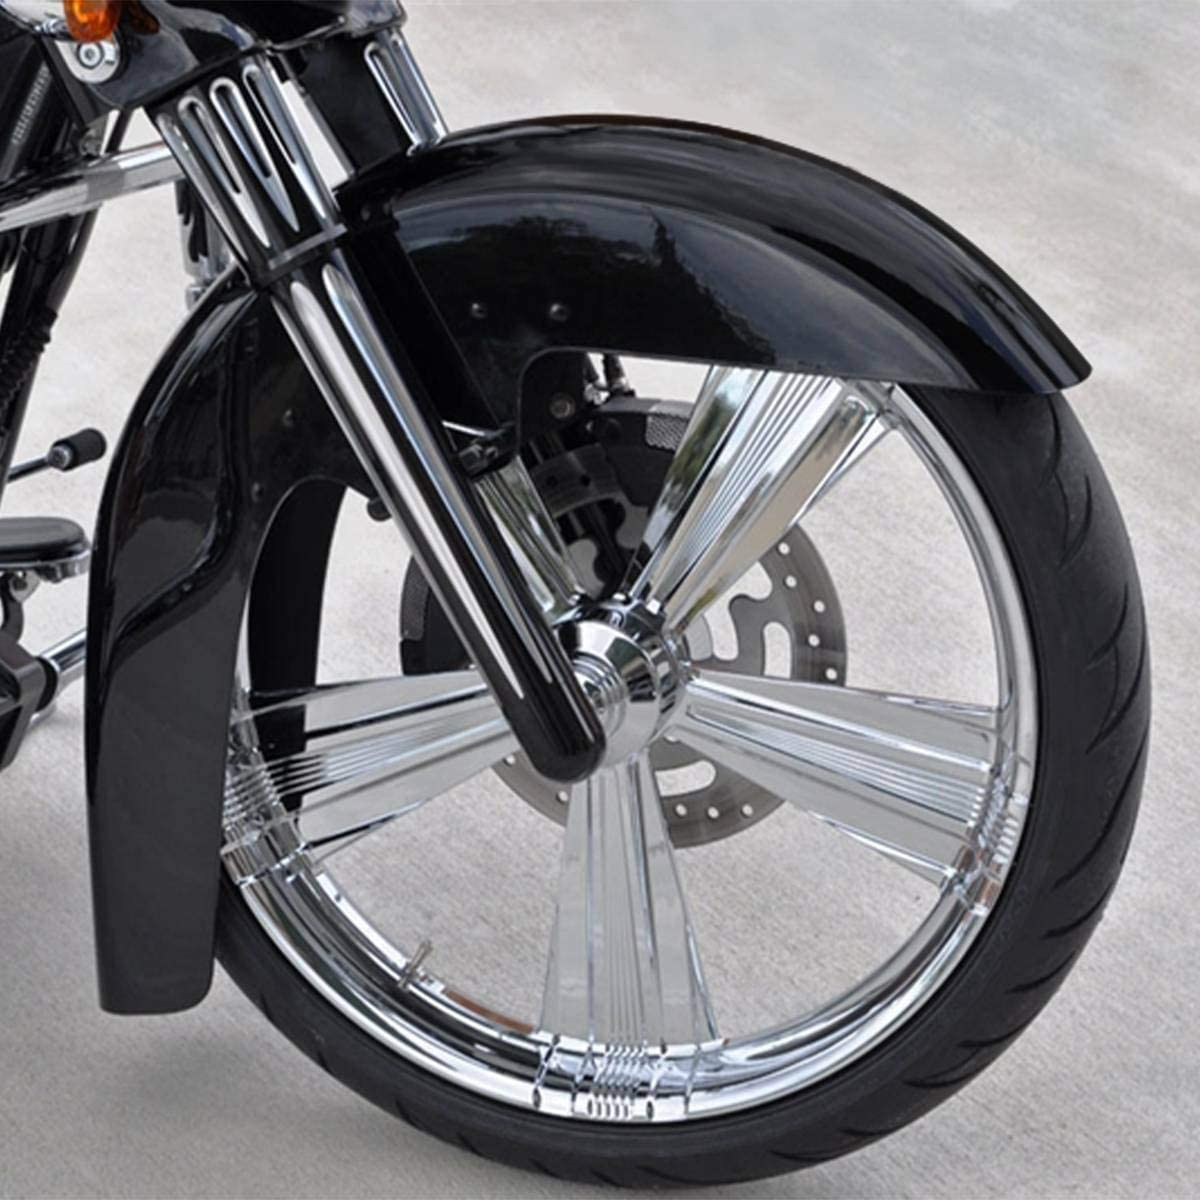 TCMT Unpainted Iron Front Fender Fit For Harley Touring Street Road Glide 1989-2013